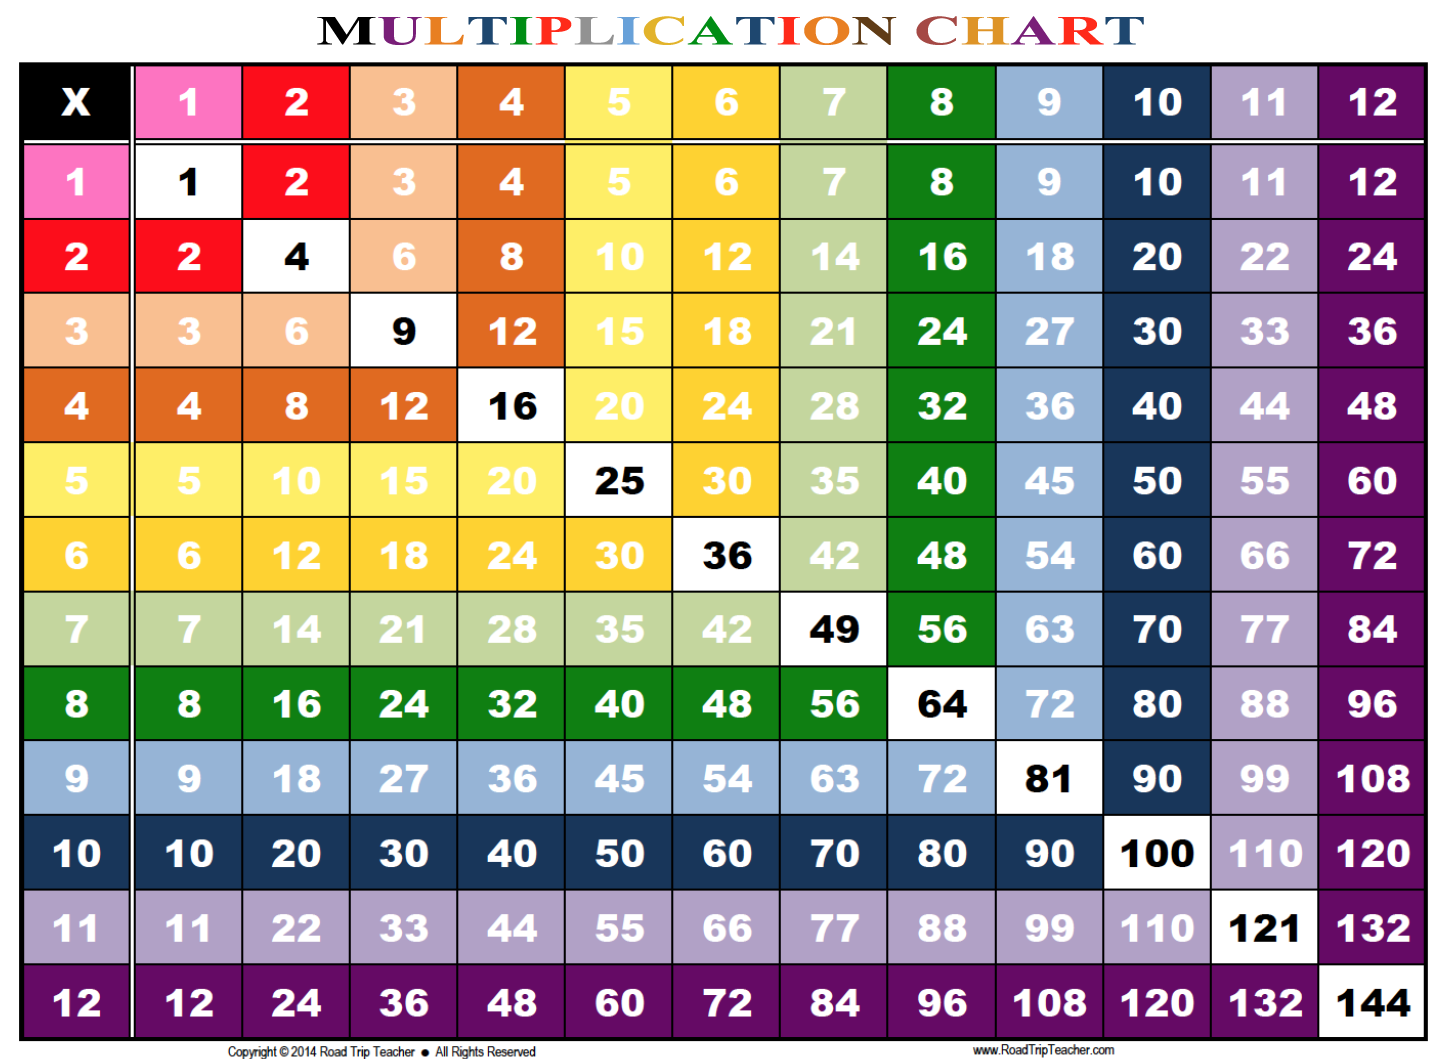 Rainbow Multiplication Chart - Family Educational Resources